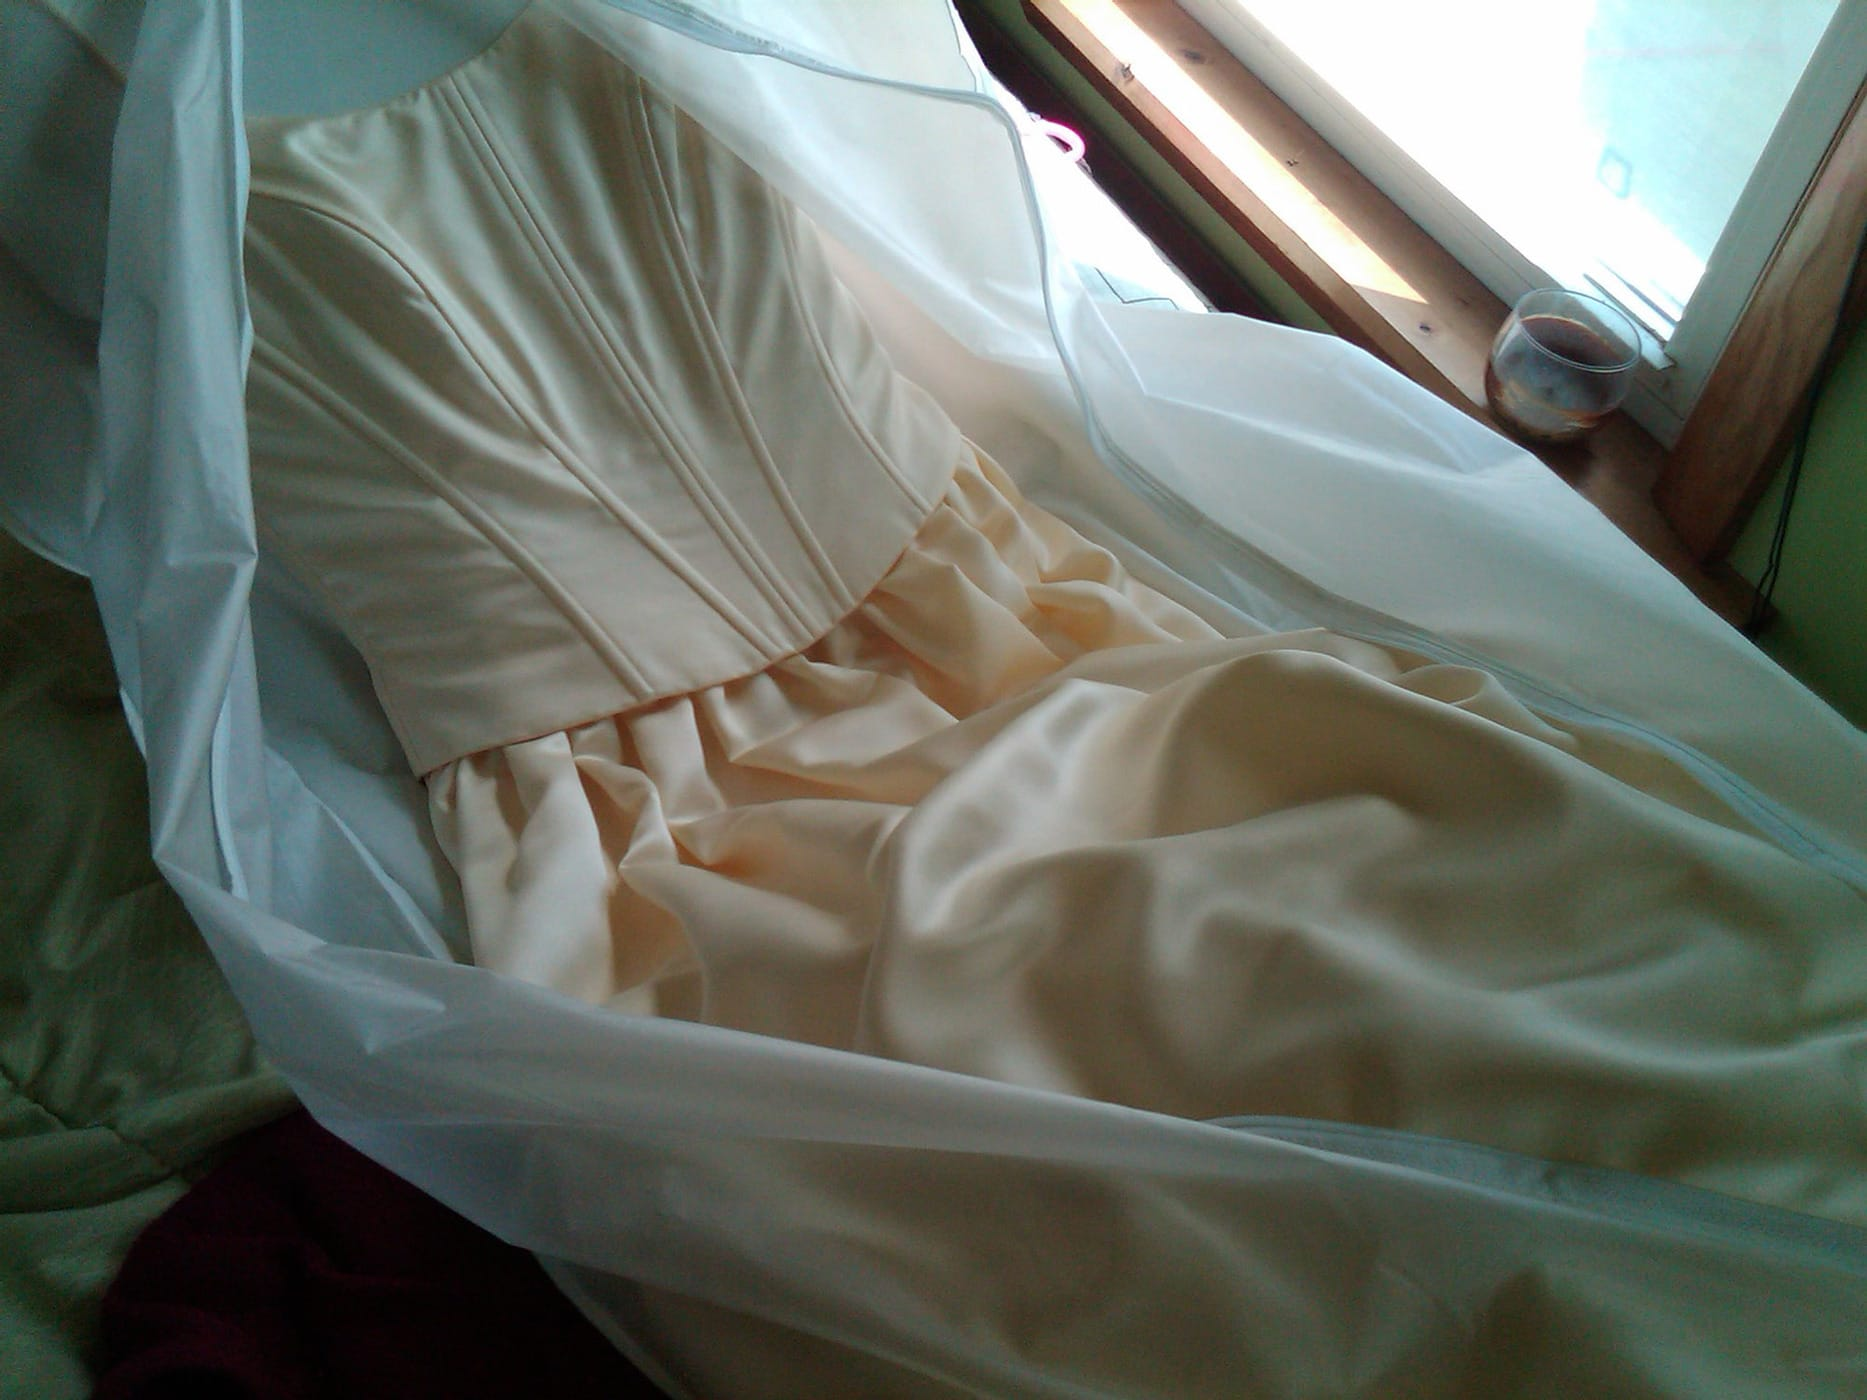 Cleaning the Attic - Throwing out my Prom Dress